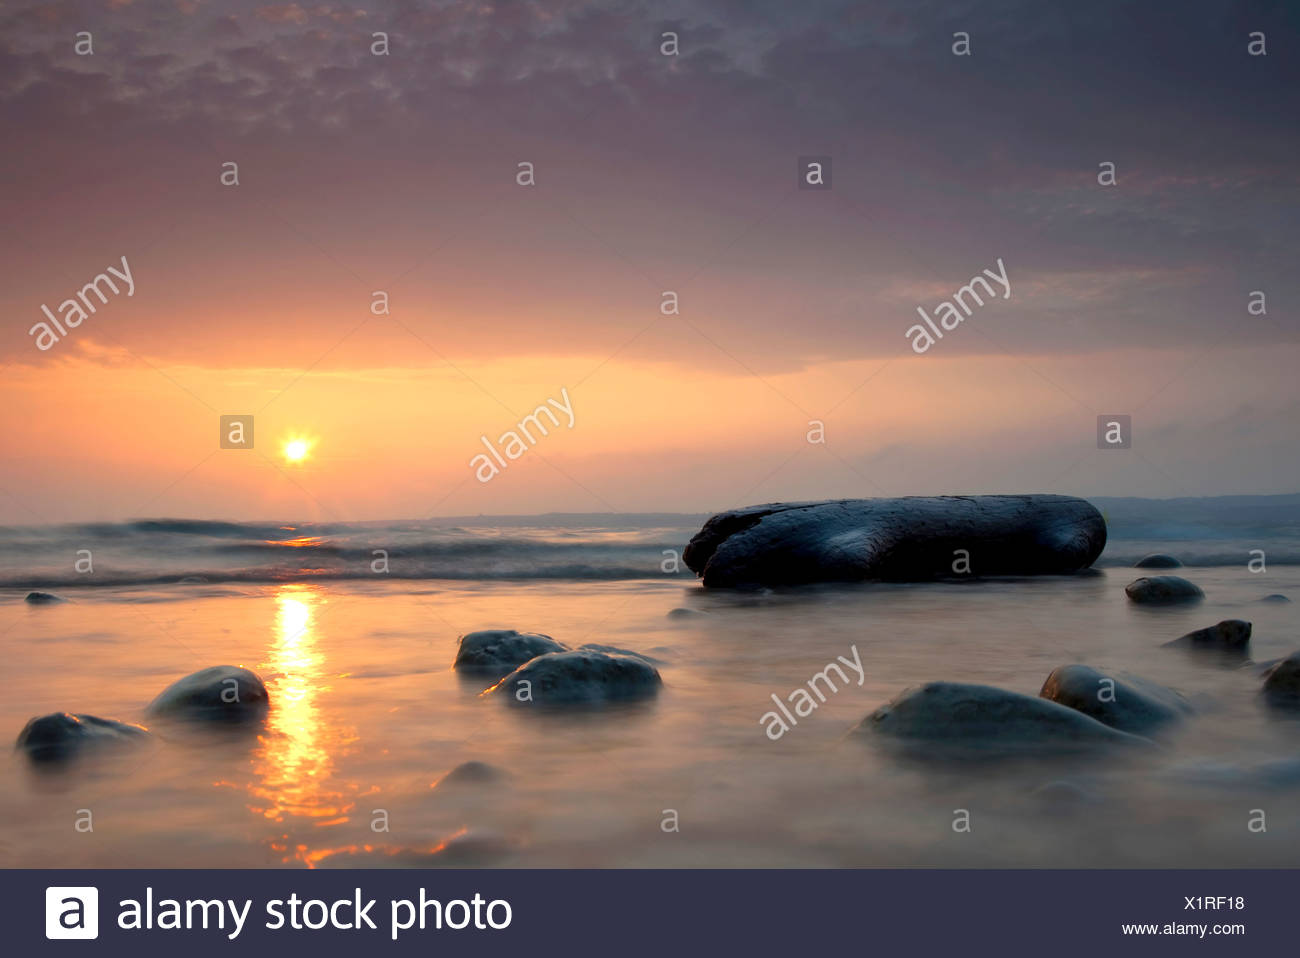 Sunrise on Lake Constance with a piece of flotsam made of wood, Konstanz, Baden-Wuerttemberg, Germany, Europe - Stock Image